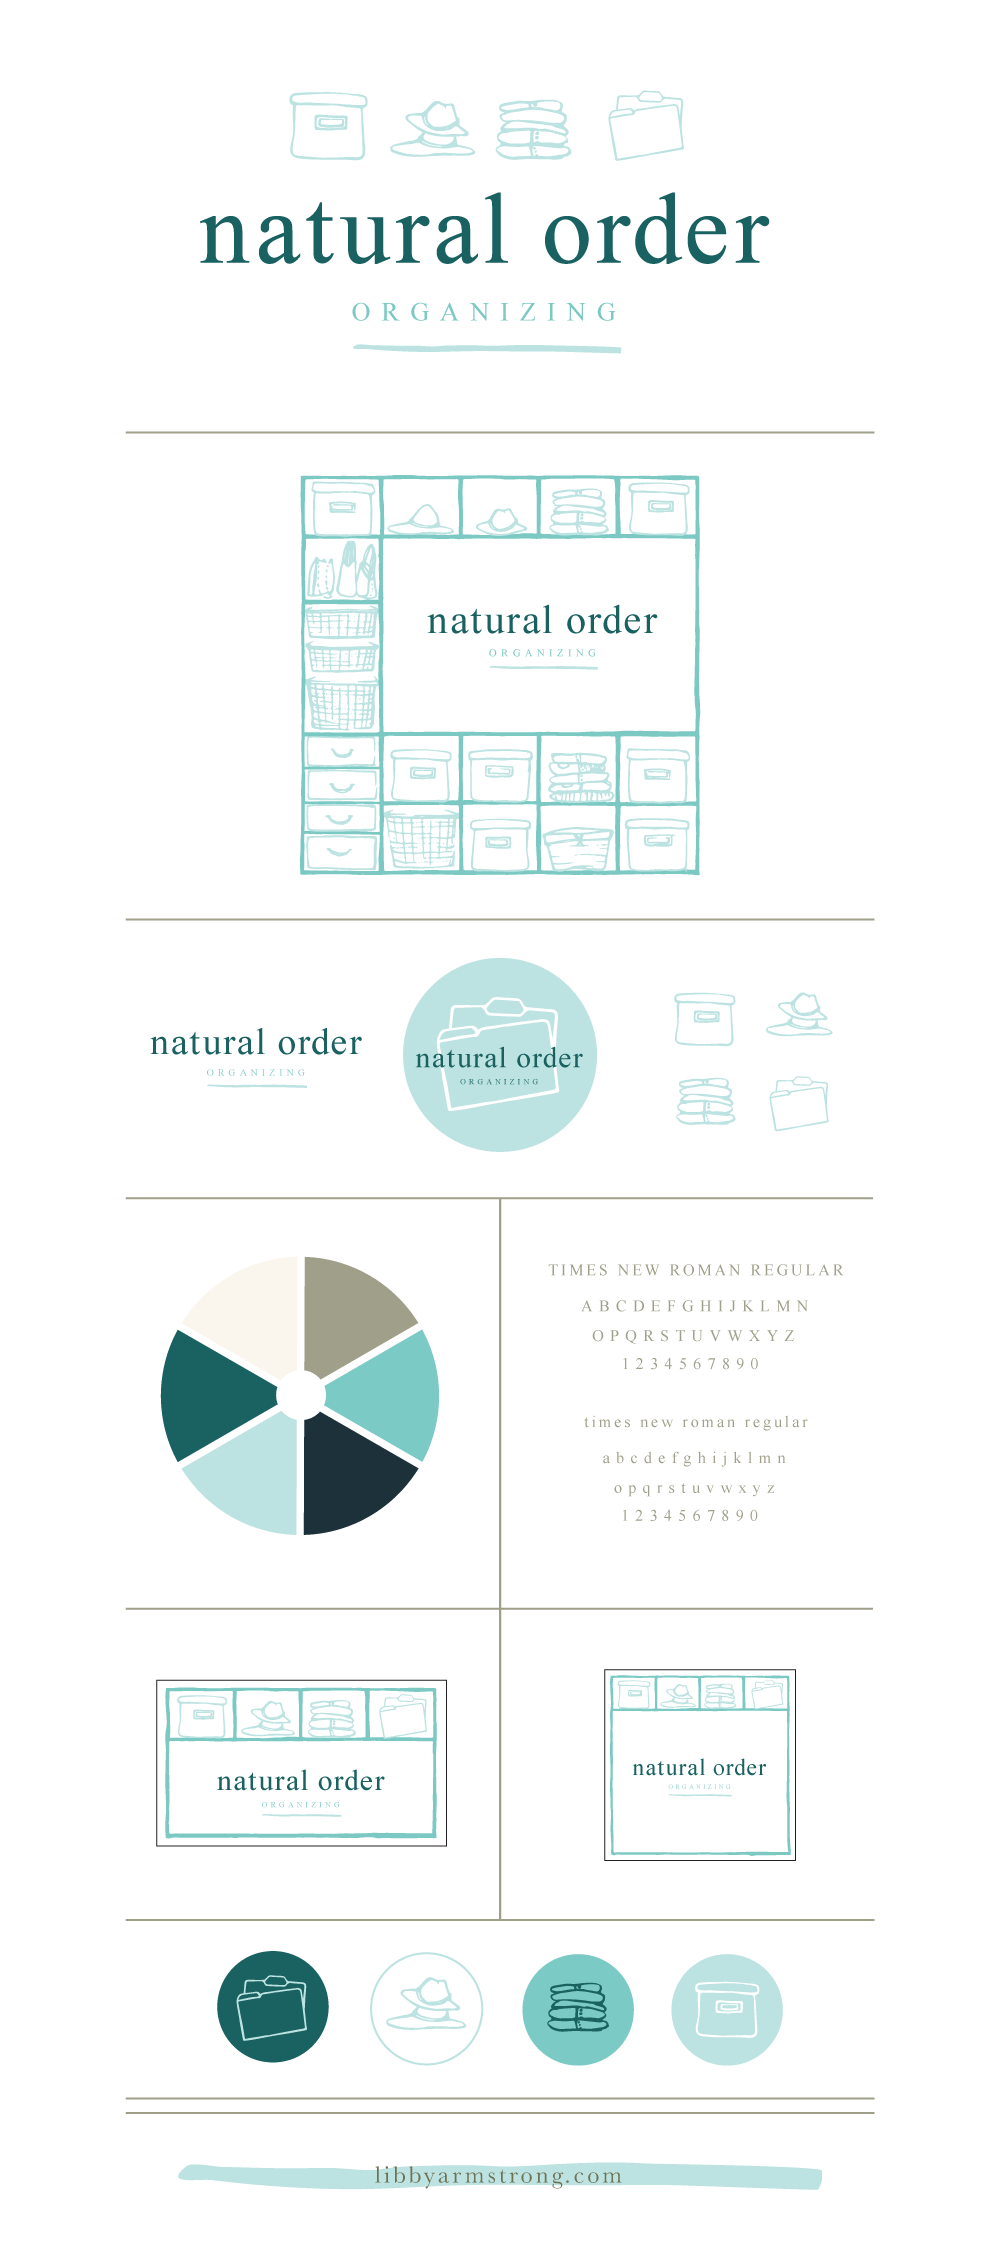 Natural Order Organizing Brand Board - Libby Armstrong Creative Design